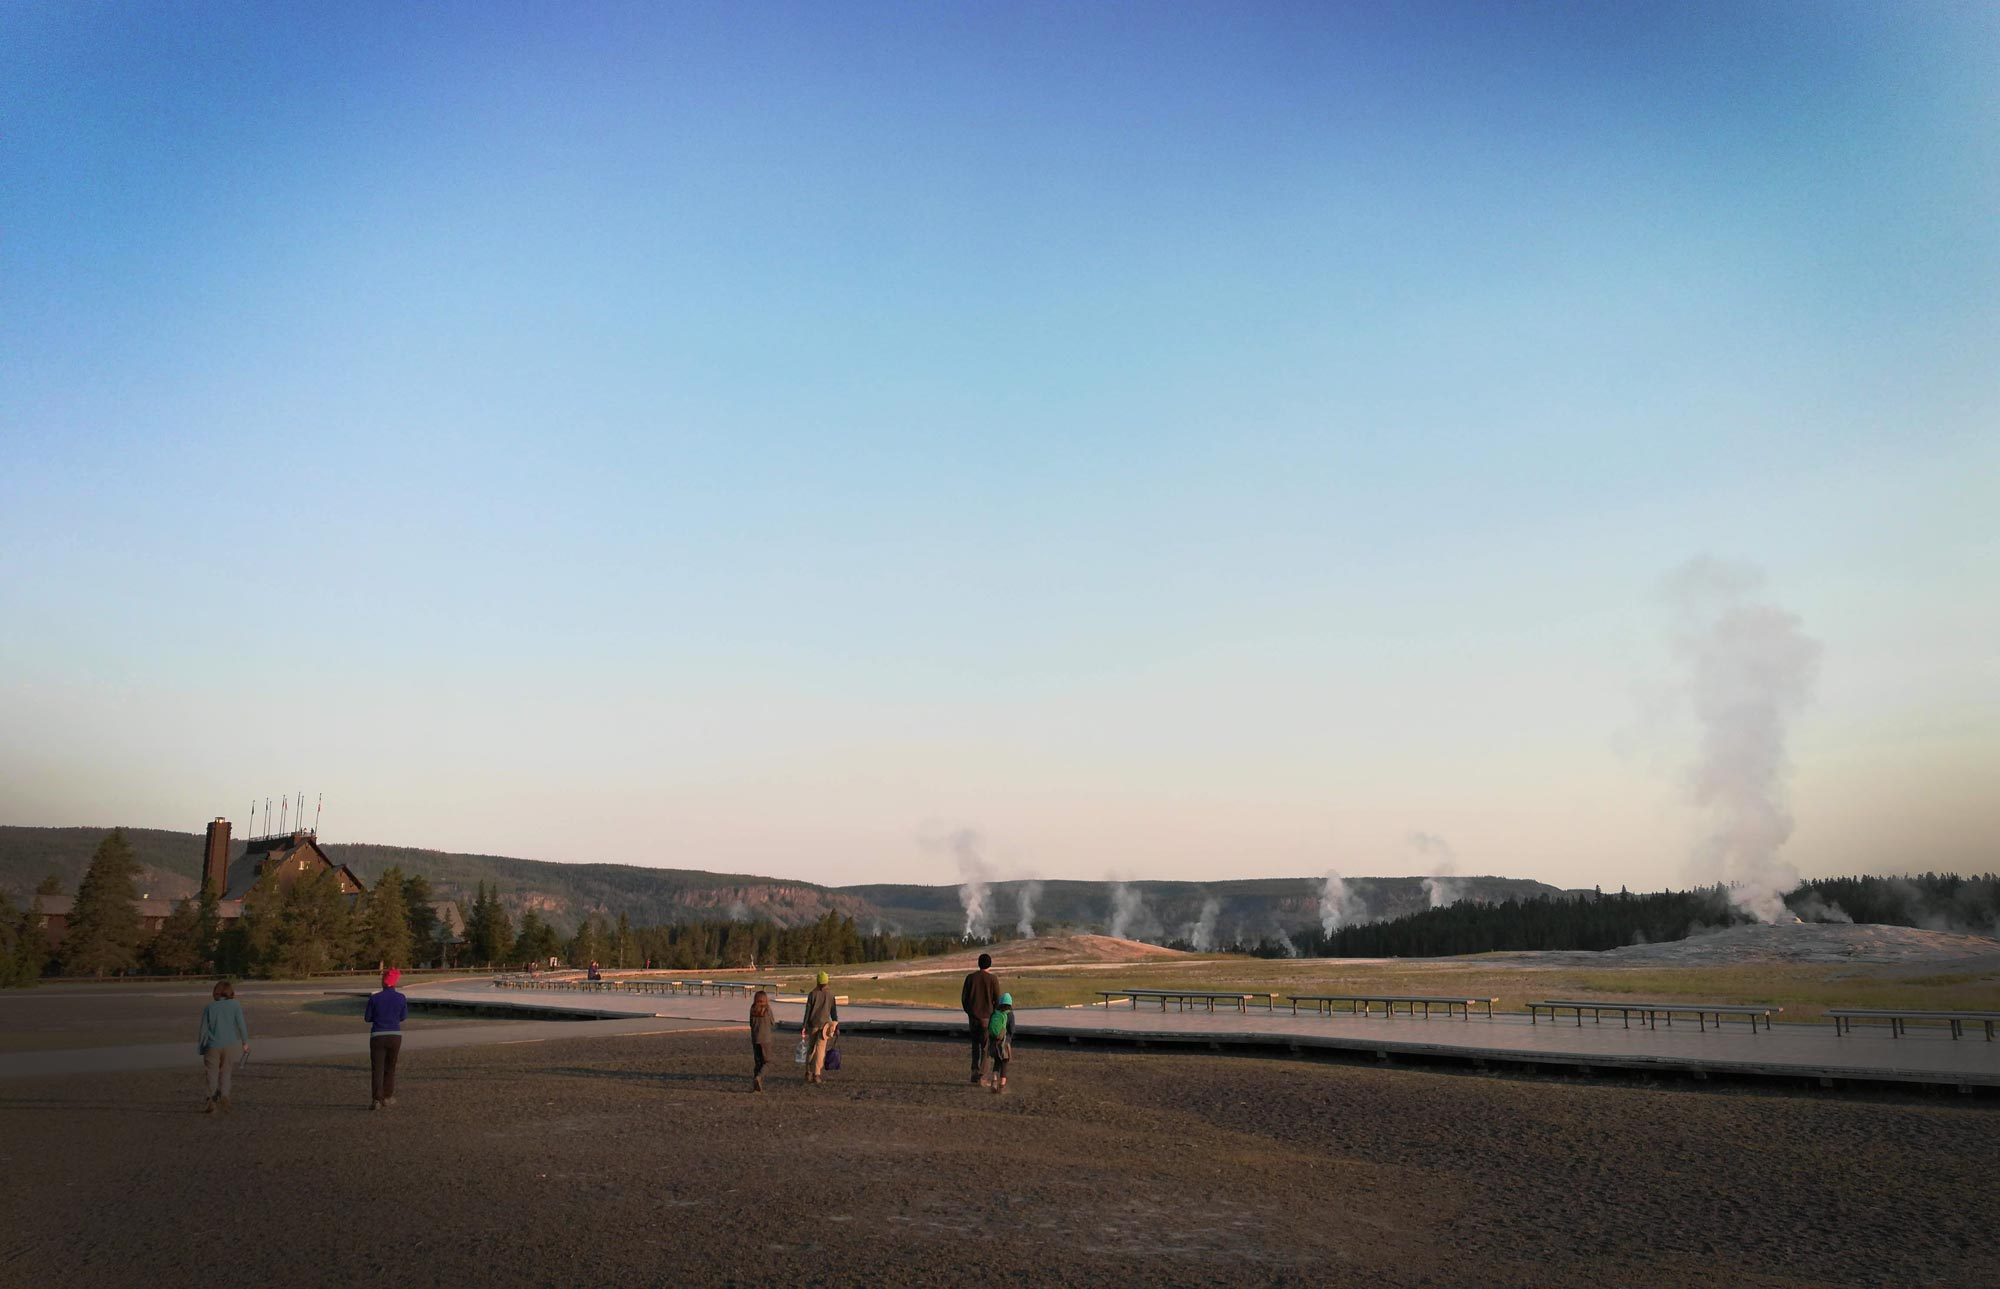 Early morning crowd at Old Faithful Geyser in the Upper Geyser Basin of Yellowstone National Park